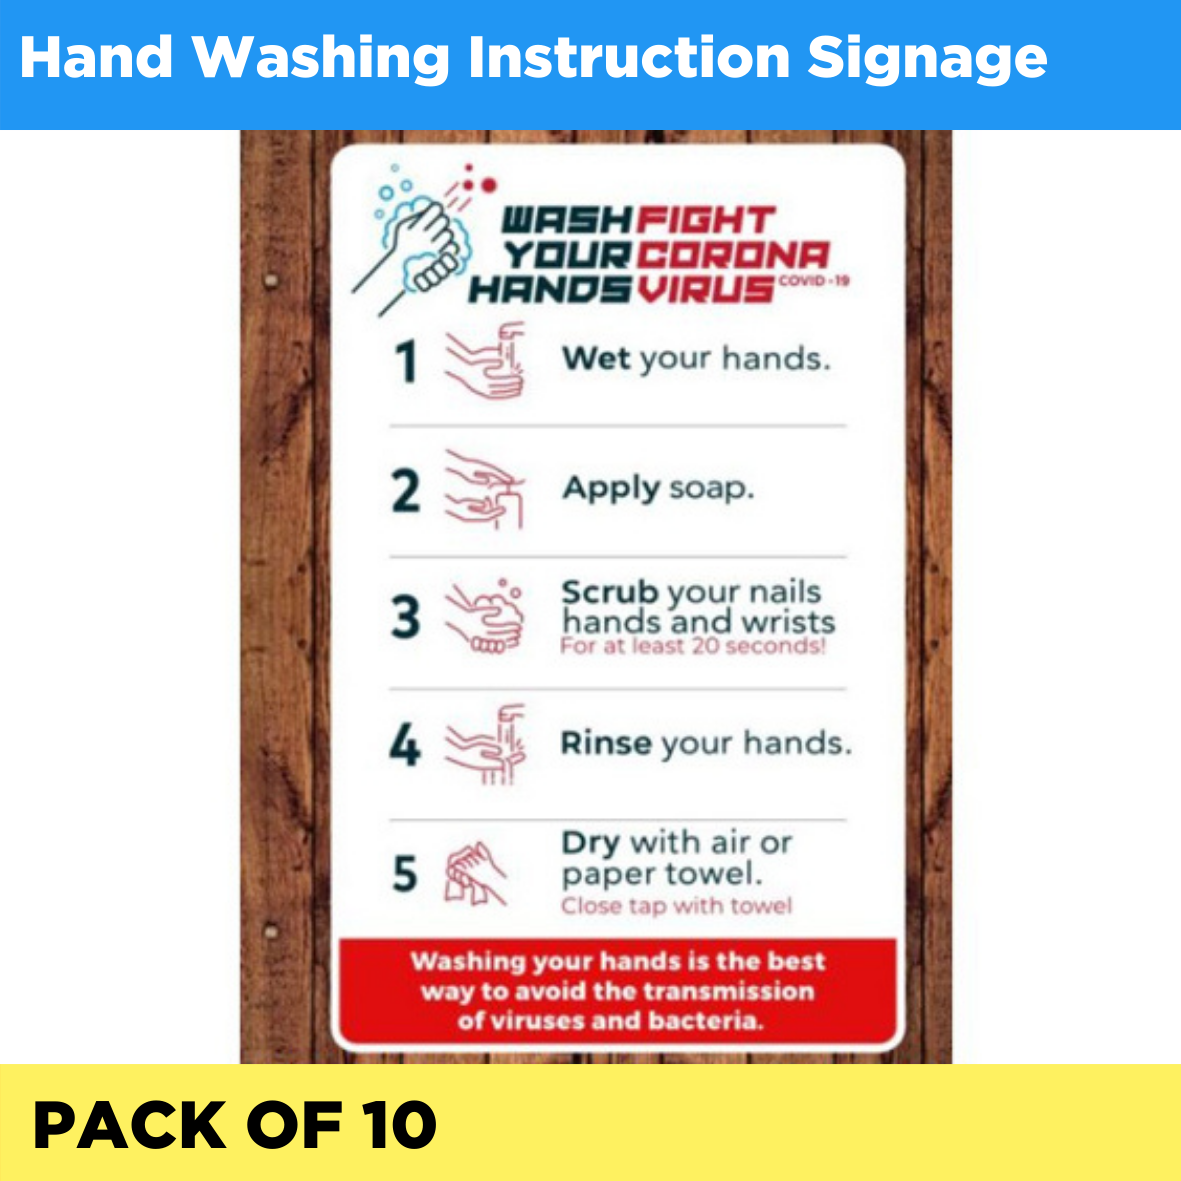 Hand washing instructions signage - Pack of 10 (Listing ID: 4653888274501)